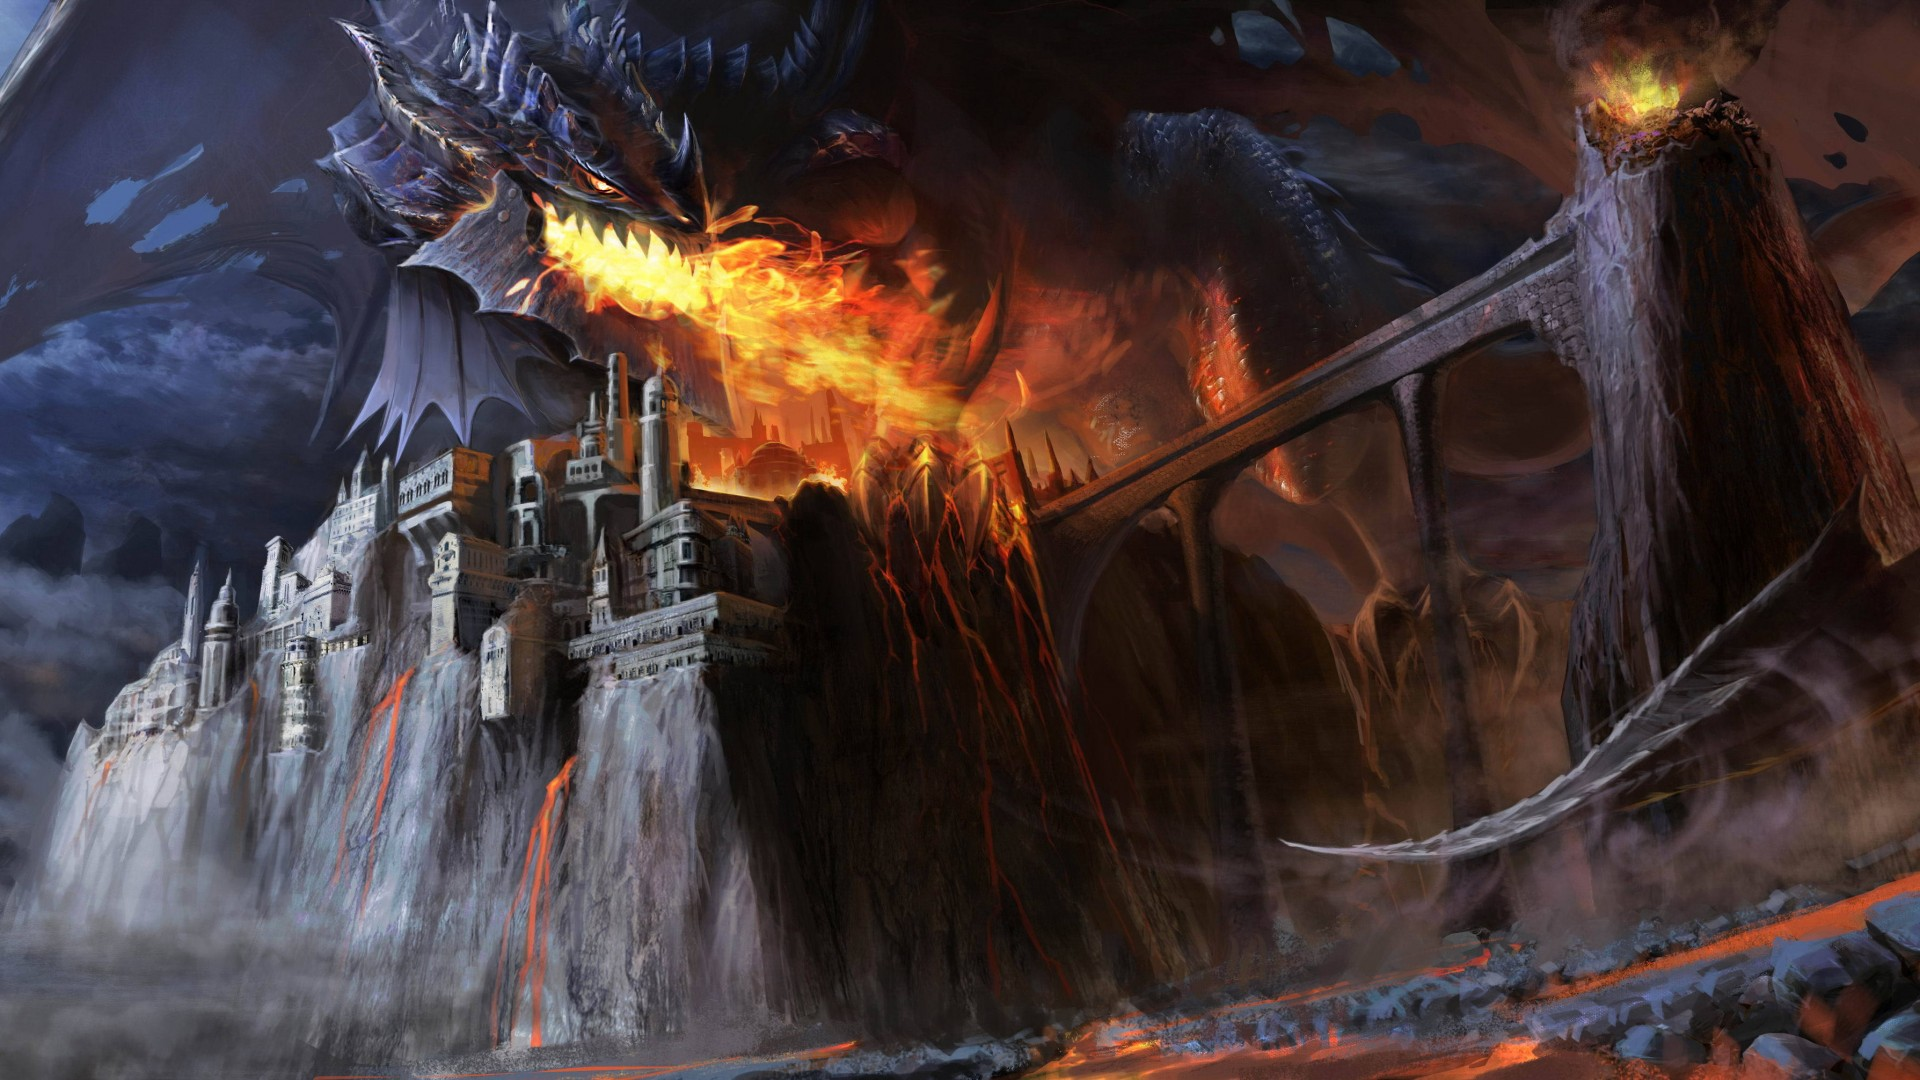 Music Festival Girl Wallpaper Wallpaper Dragon Black Fire Castle Bridge Lava Smoke